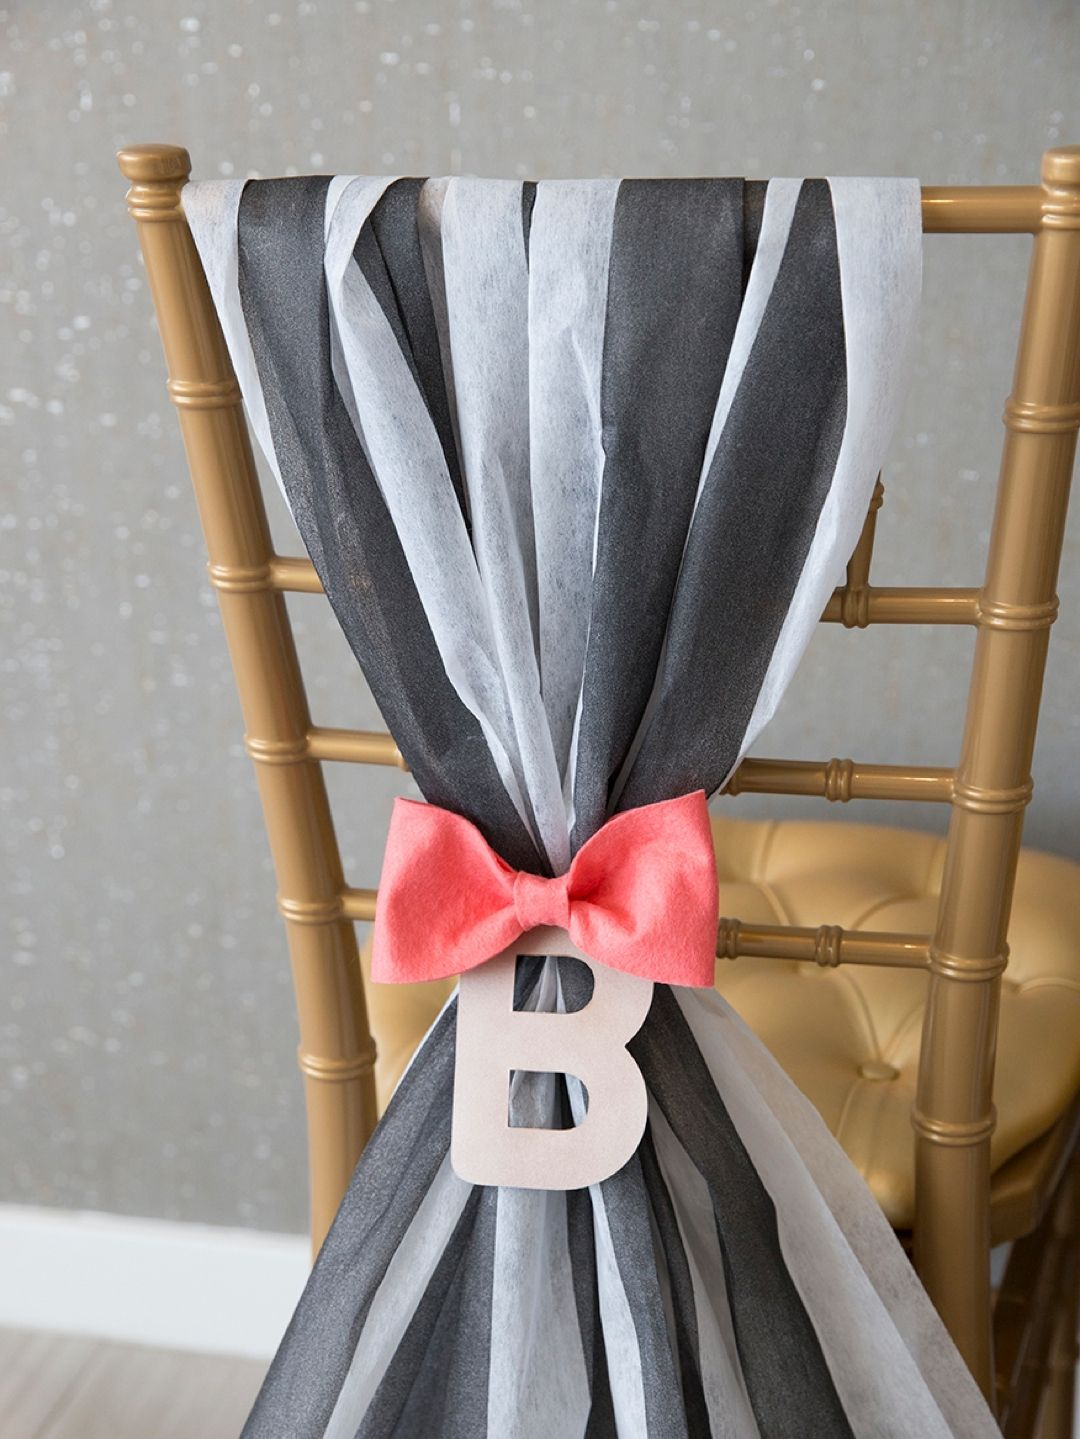 Check out these chic diy wedding reception chair bows! & Check Out These Chic DIY Wedding Reception Chair Bows! | Pinterest ...